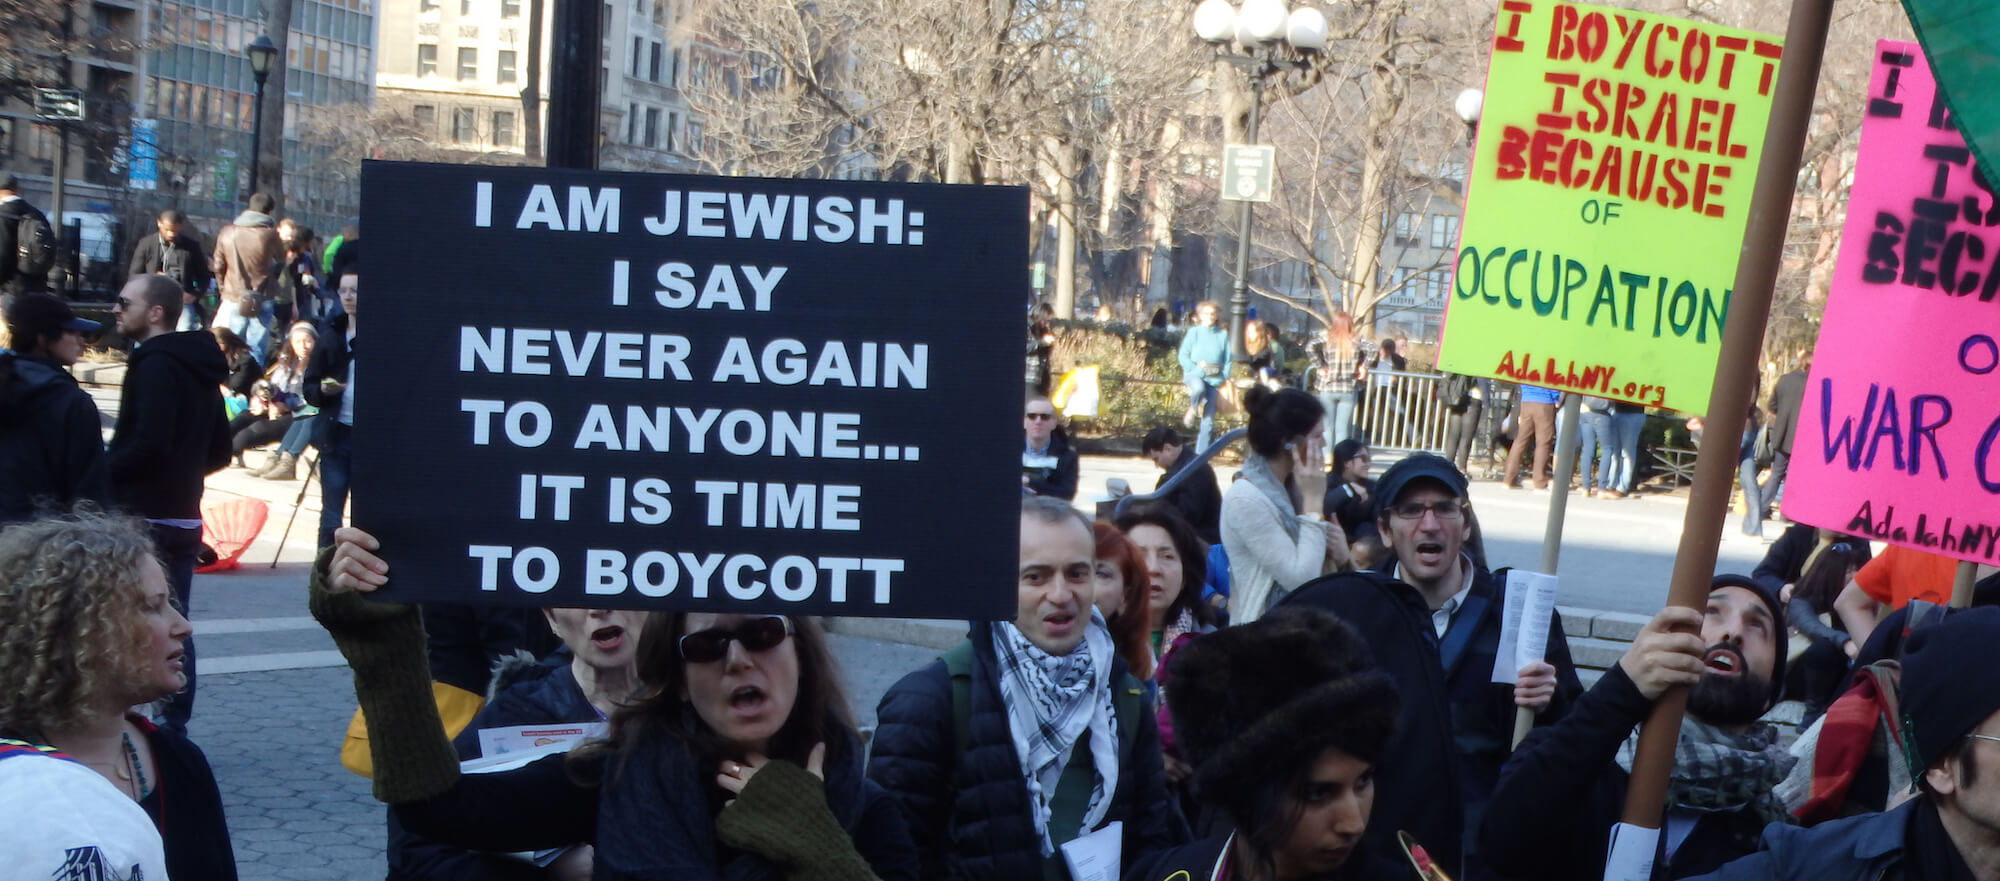 BDS march from Greenwich Village to Union Square in New York City on March 8th, 2014. (Photo: The All-Nite Images/ Flickr)